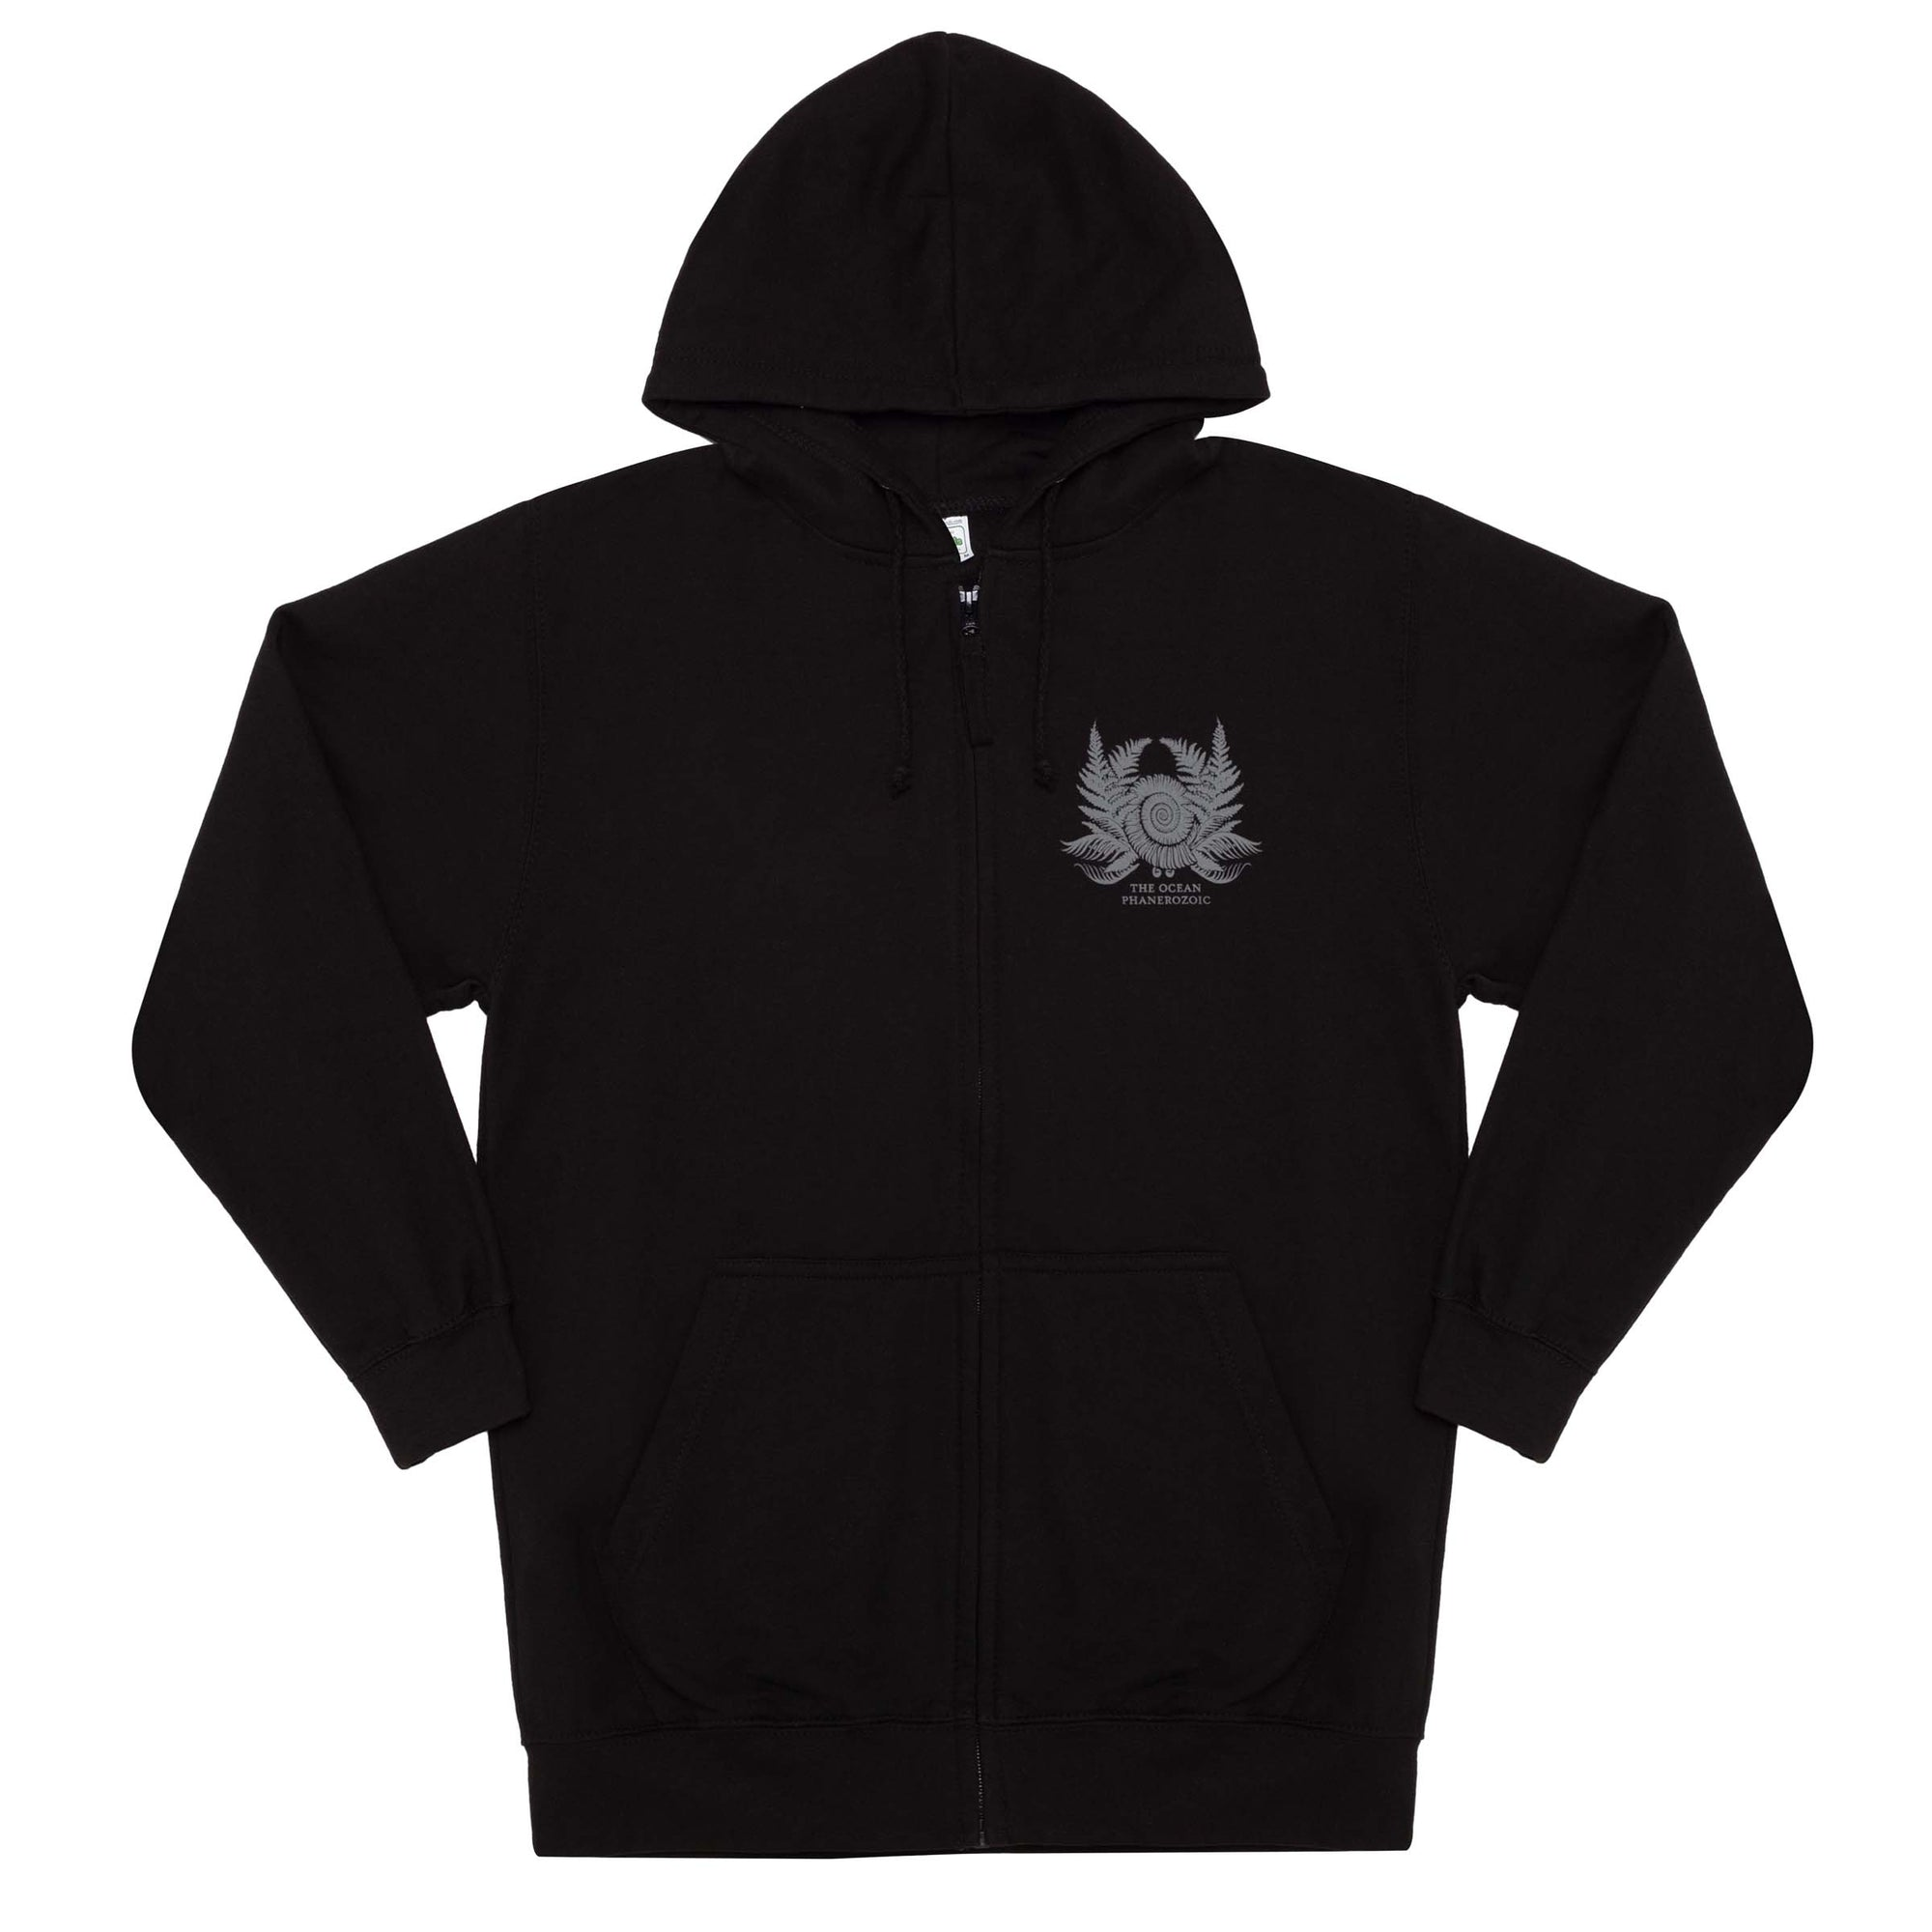 THE OCEAN // PHANEROZOIC I - AMMONITE BLACK HOODIE - Wild Thing Records